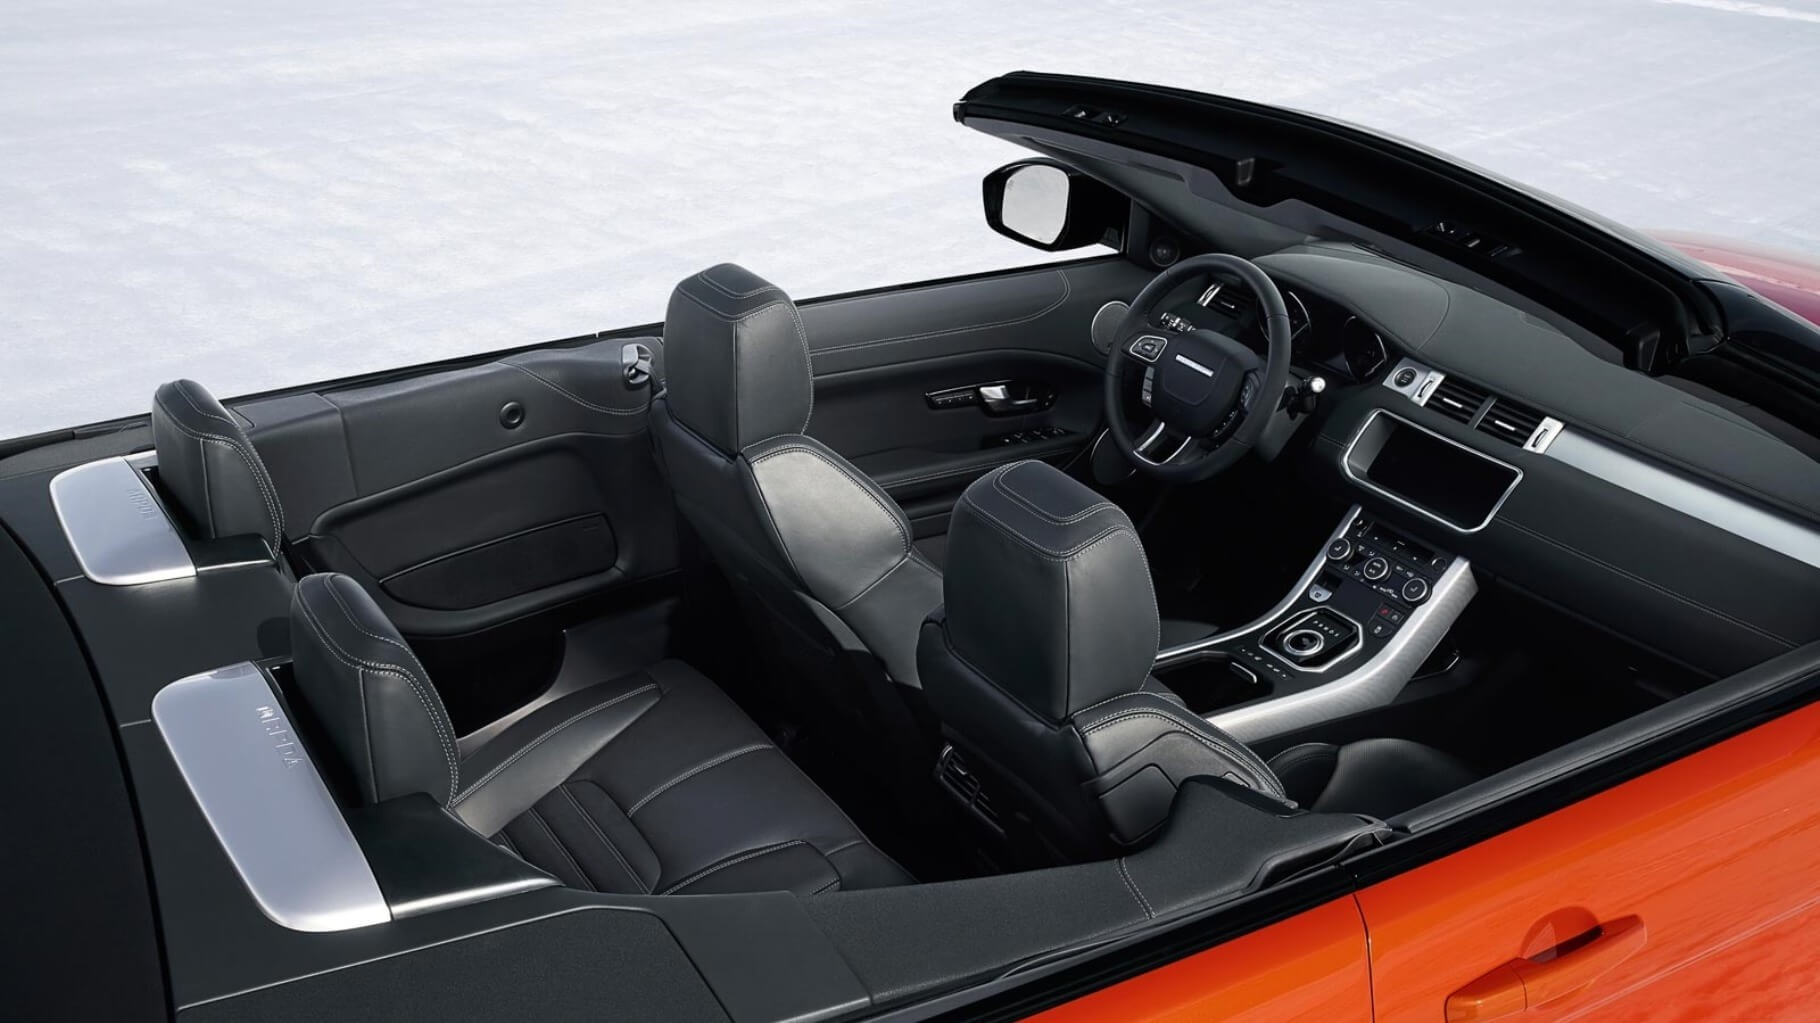 2017 Land Rover Range Rover Evoque Convertible Interior View